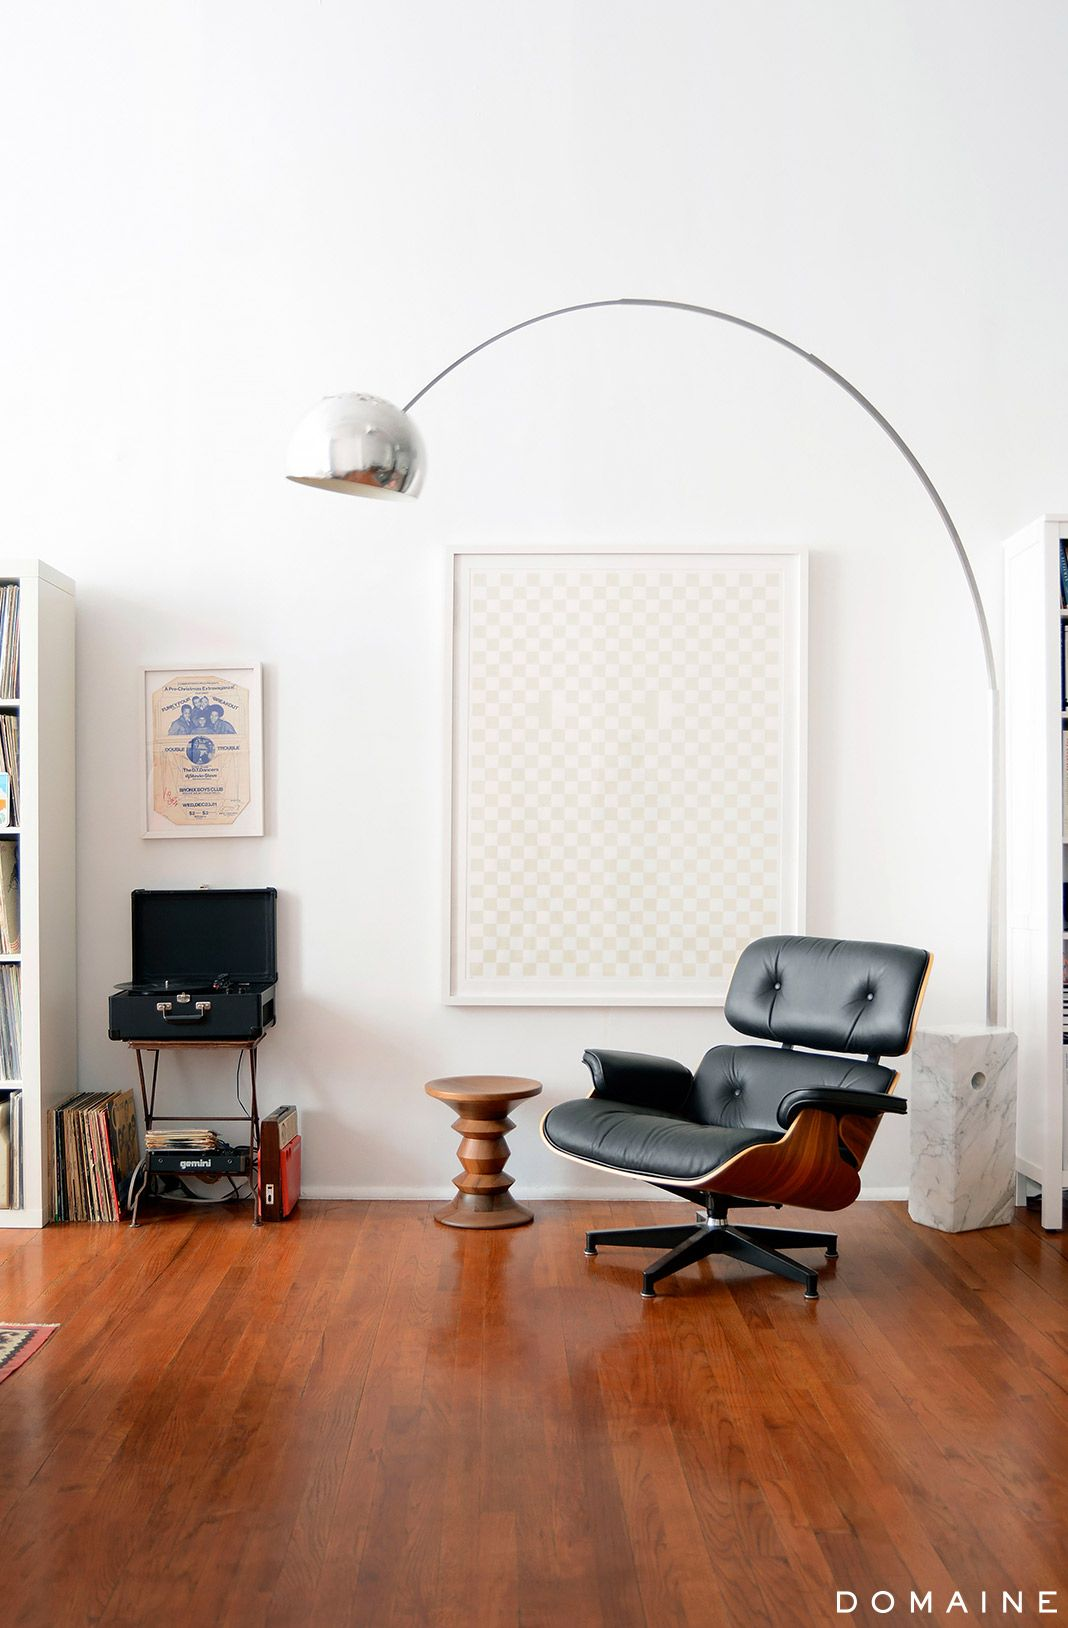 Barcelona Sessel ähnlich 12 Reasons We Still Want An Eames Lounge Chair Loewe